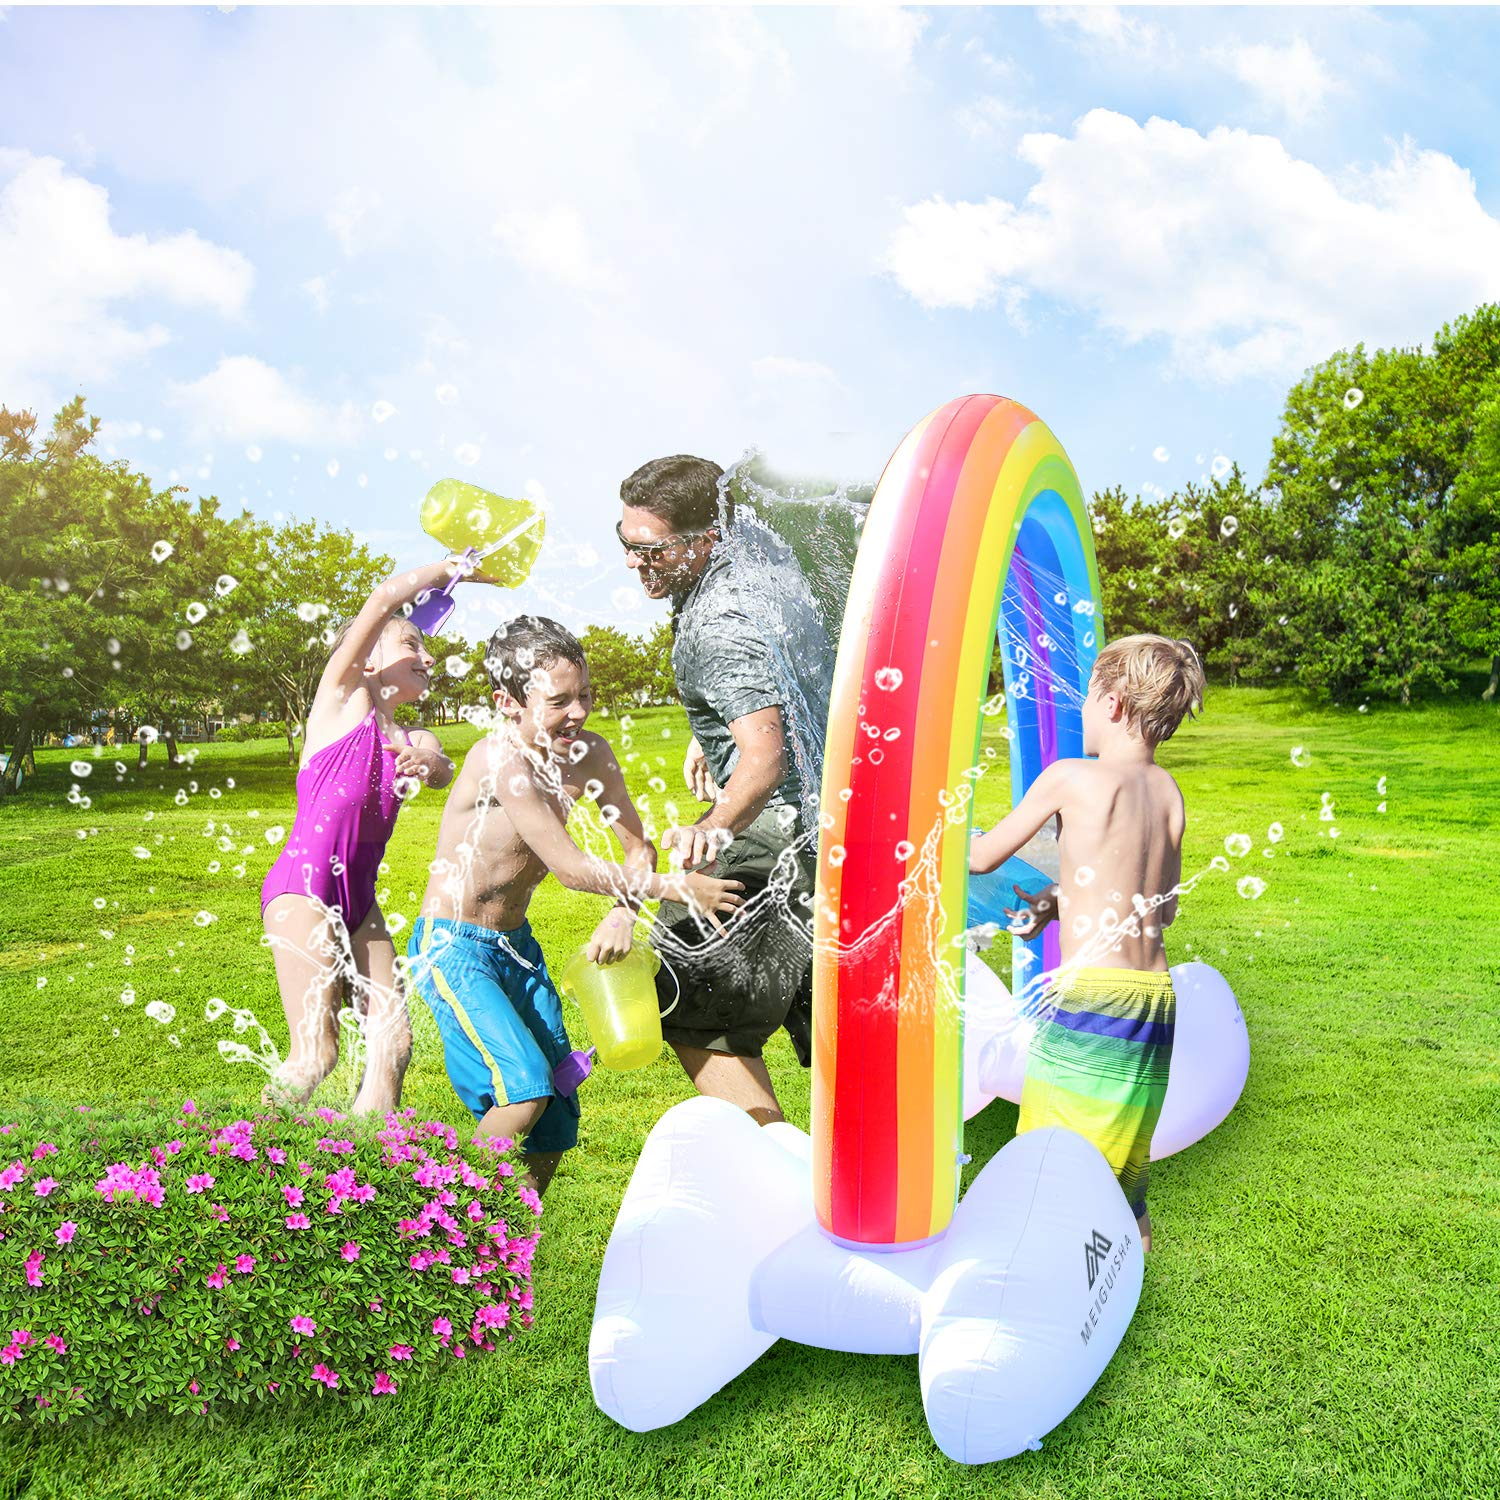 MeiGuiSha Inflatable Rainbow Yard Summer Sprinkler Toy, Over 6 Feet Long, Perfect for Summer Toy List by MeiGuiSha (Image #5)